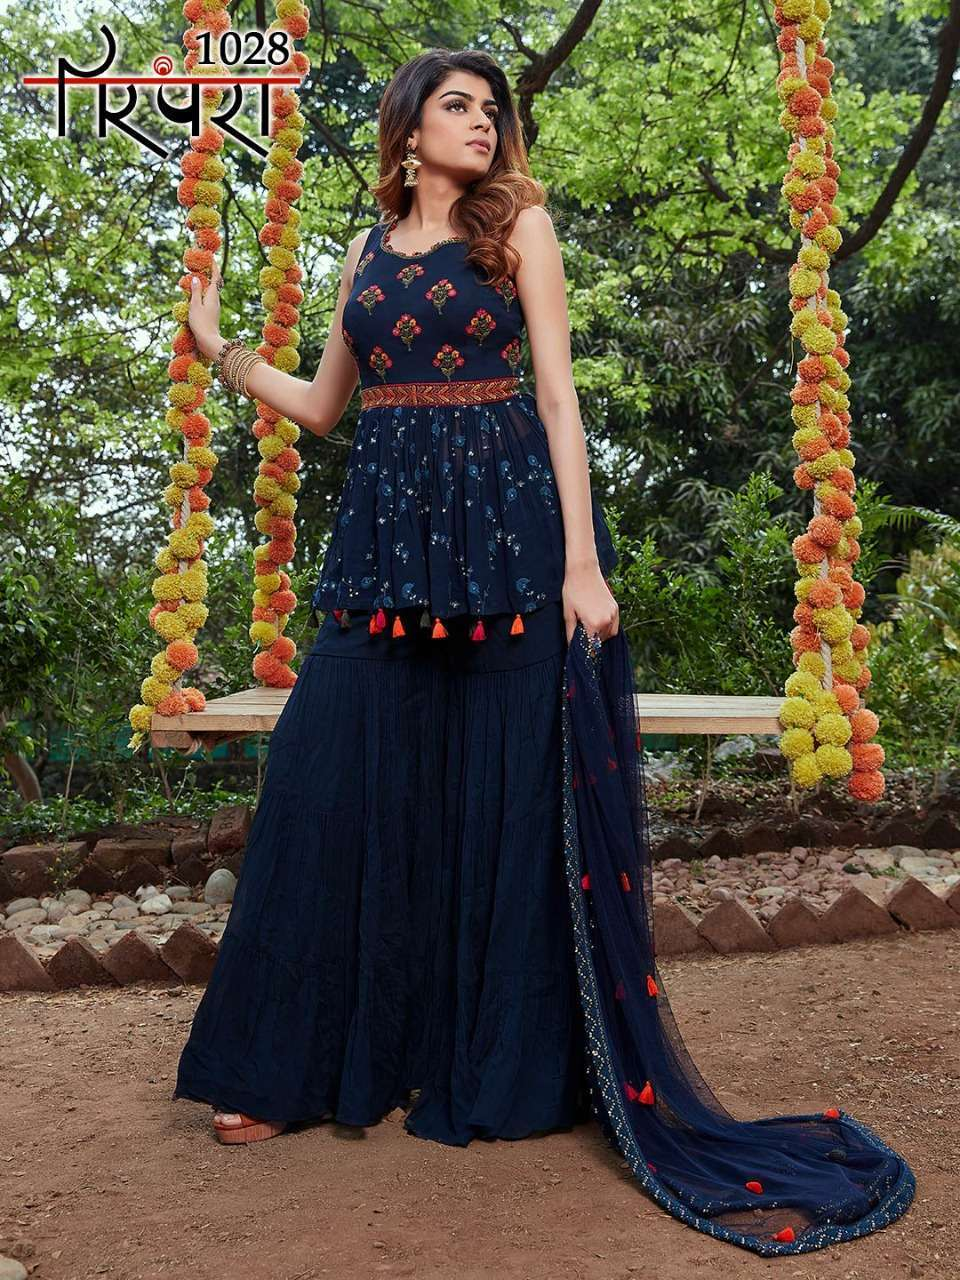 Parampara Vol 6 Georgette With Sequence Embroidery Work Readymade Suits Collection 04